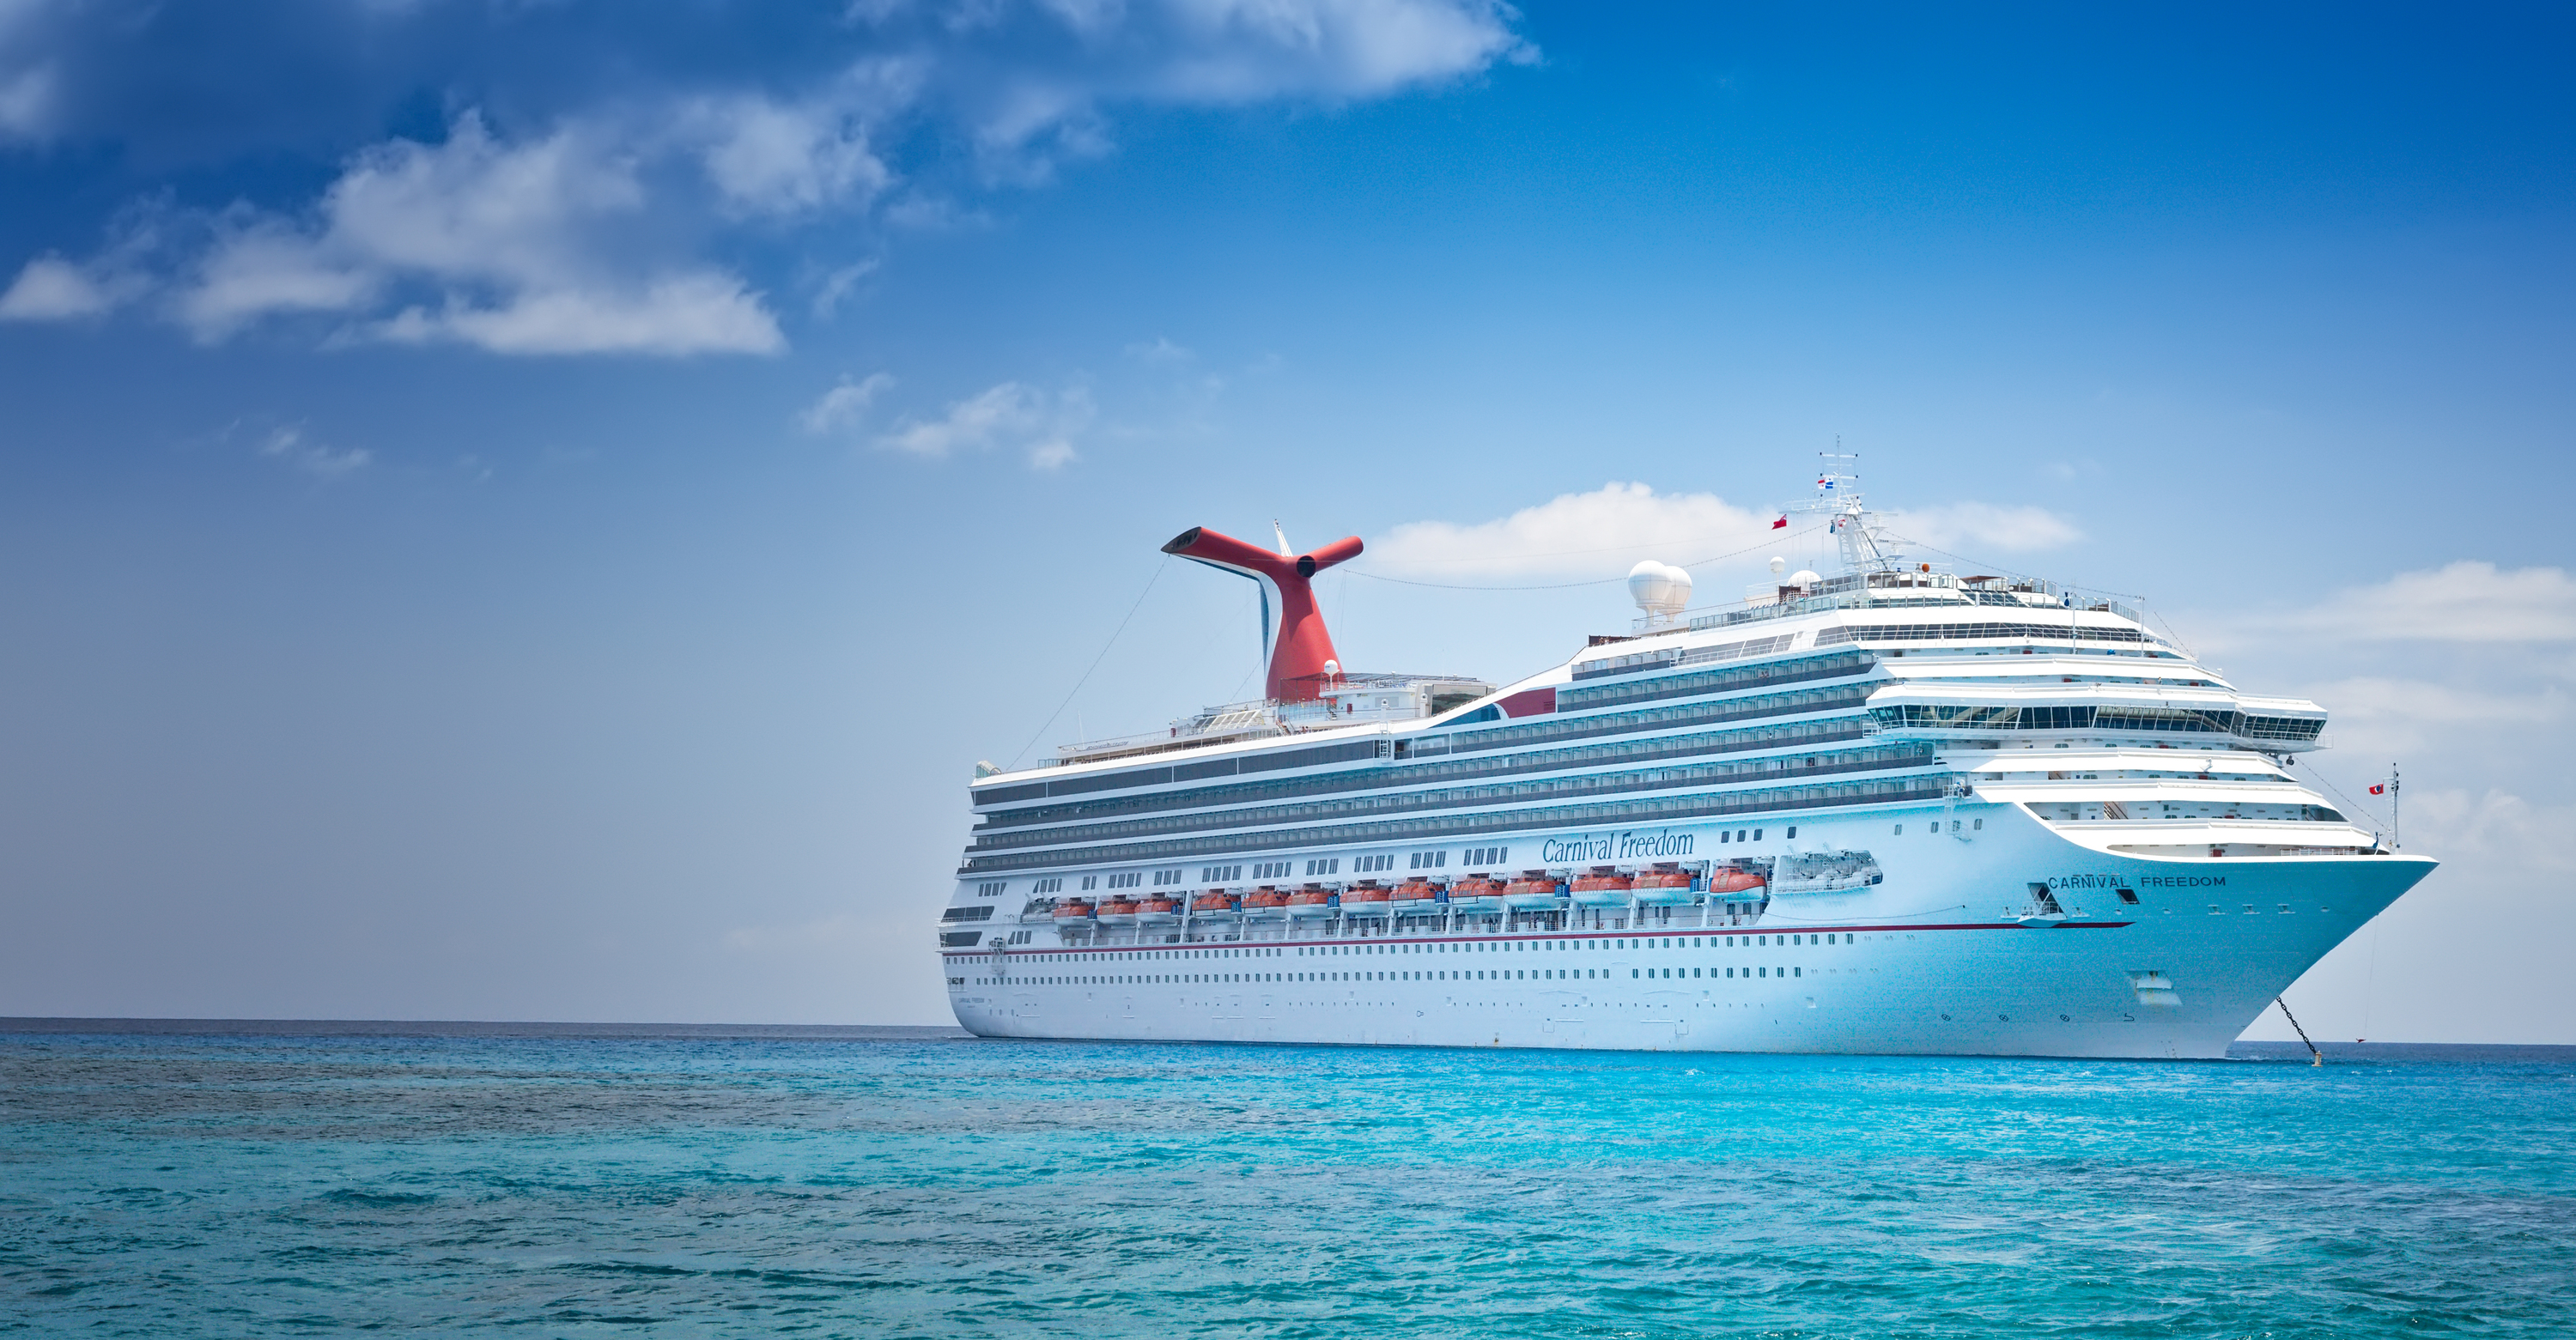 Want to win a FREE cruise? The Dr. Seuss Word Challenge can help with that